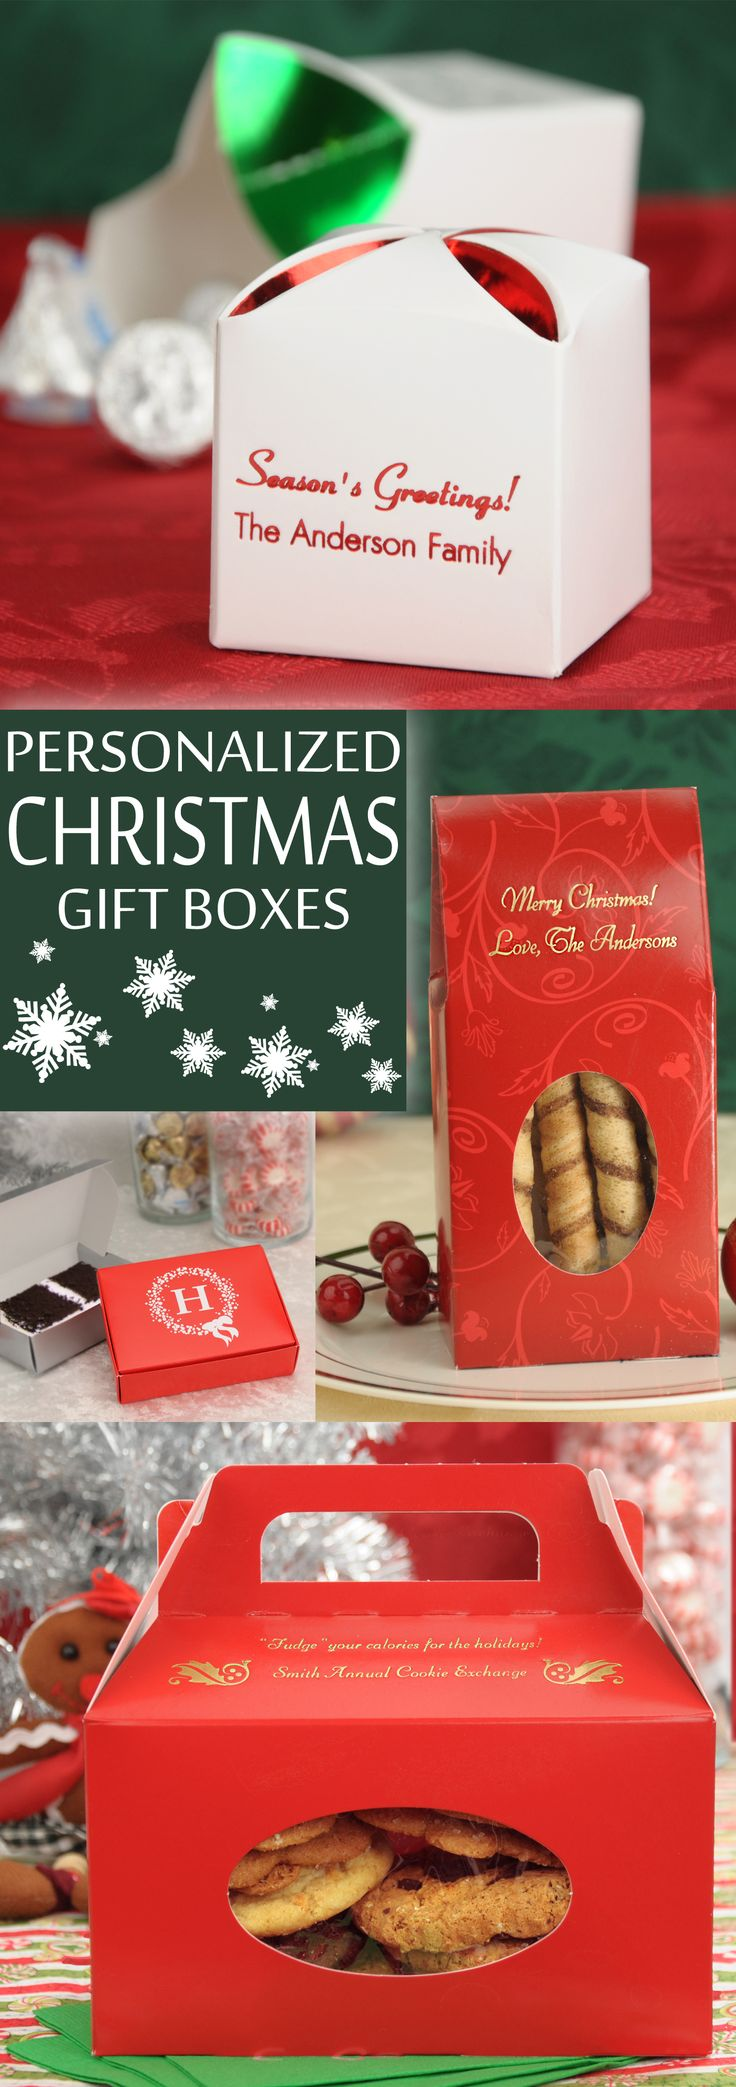 Package your homemade cookies, fudge, caramel corn, and candies in adorably sweet goodie gift boxes personalized with a holiday design and up to 4 lines of custom print to make the perfect gift to family and friends this Christmas. These goodie gift boxes can be ordered at http://myweddingreceptionideas.com/christmas_holiday_favor_boxes.asp